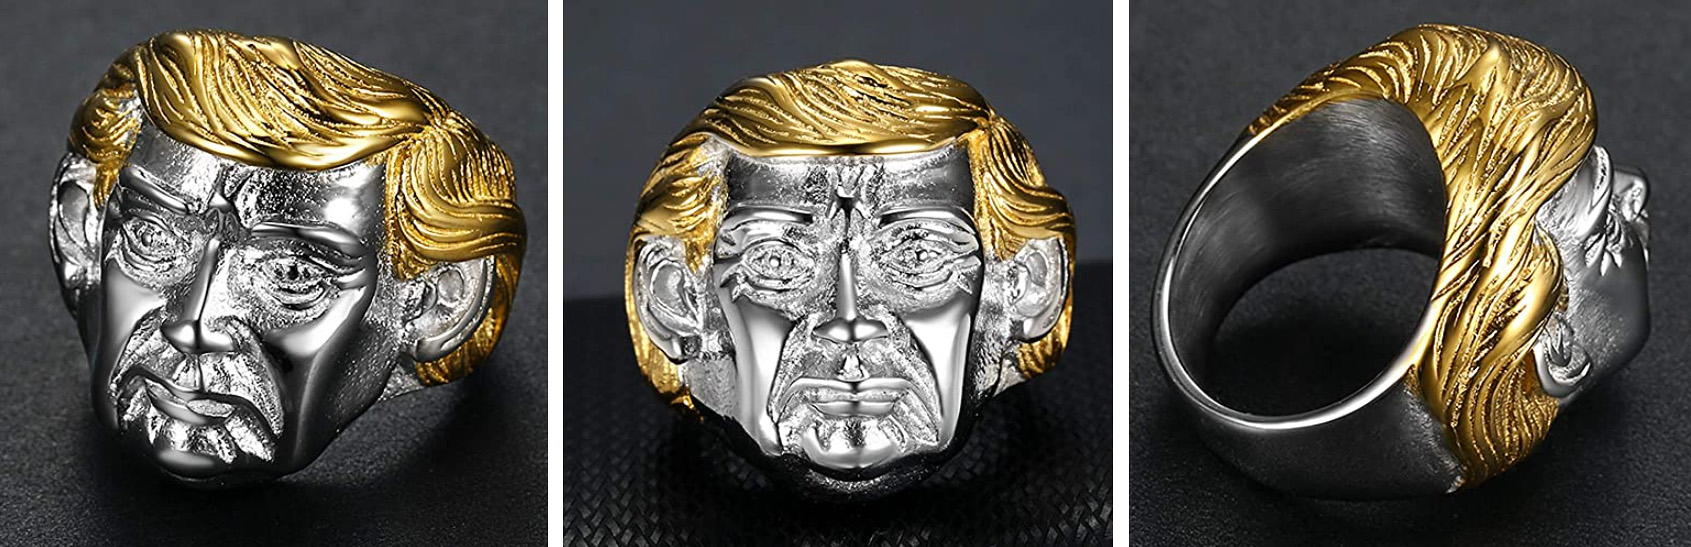 Donald-Trump-Stainless-Steel-Ring